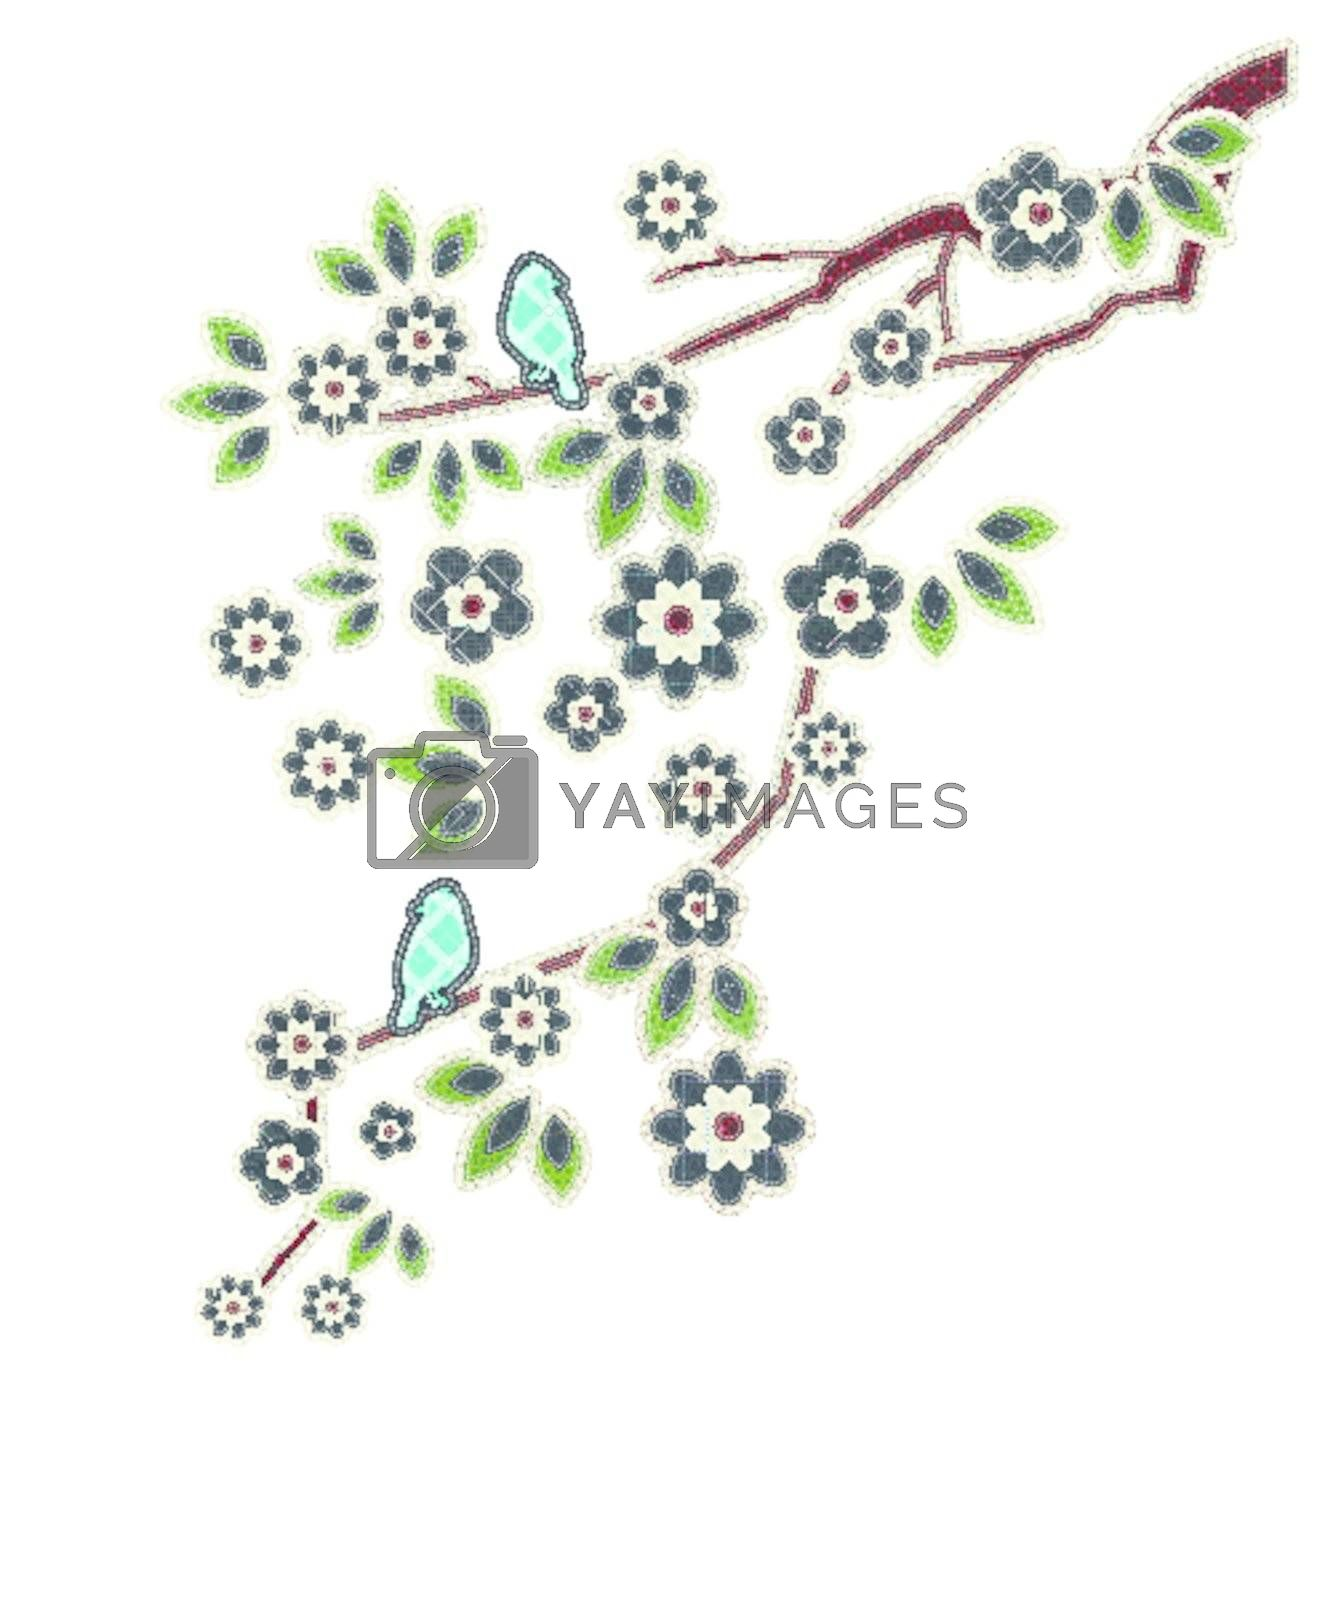 Illustrations patchwork of Leaves, flowers, birds